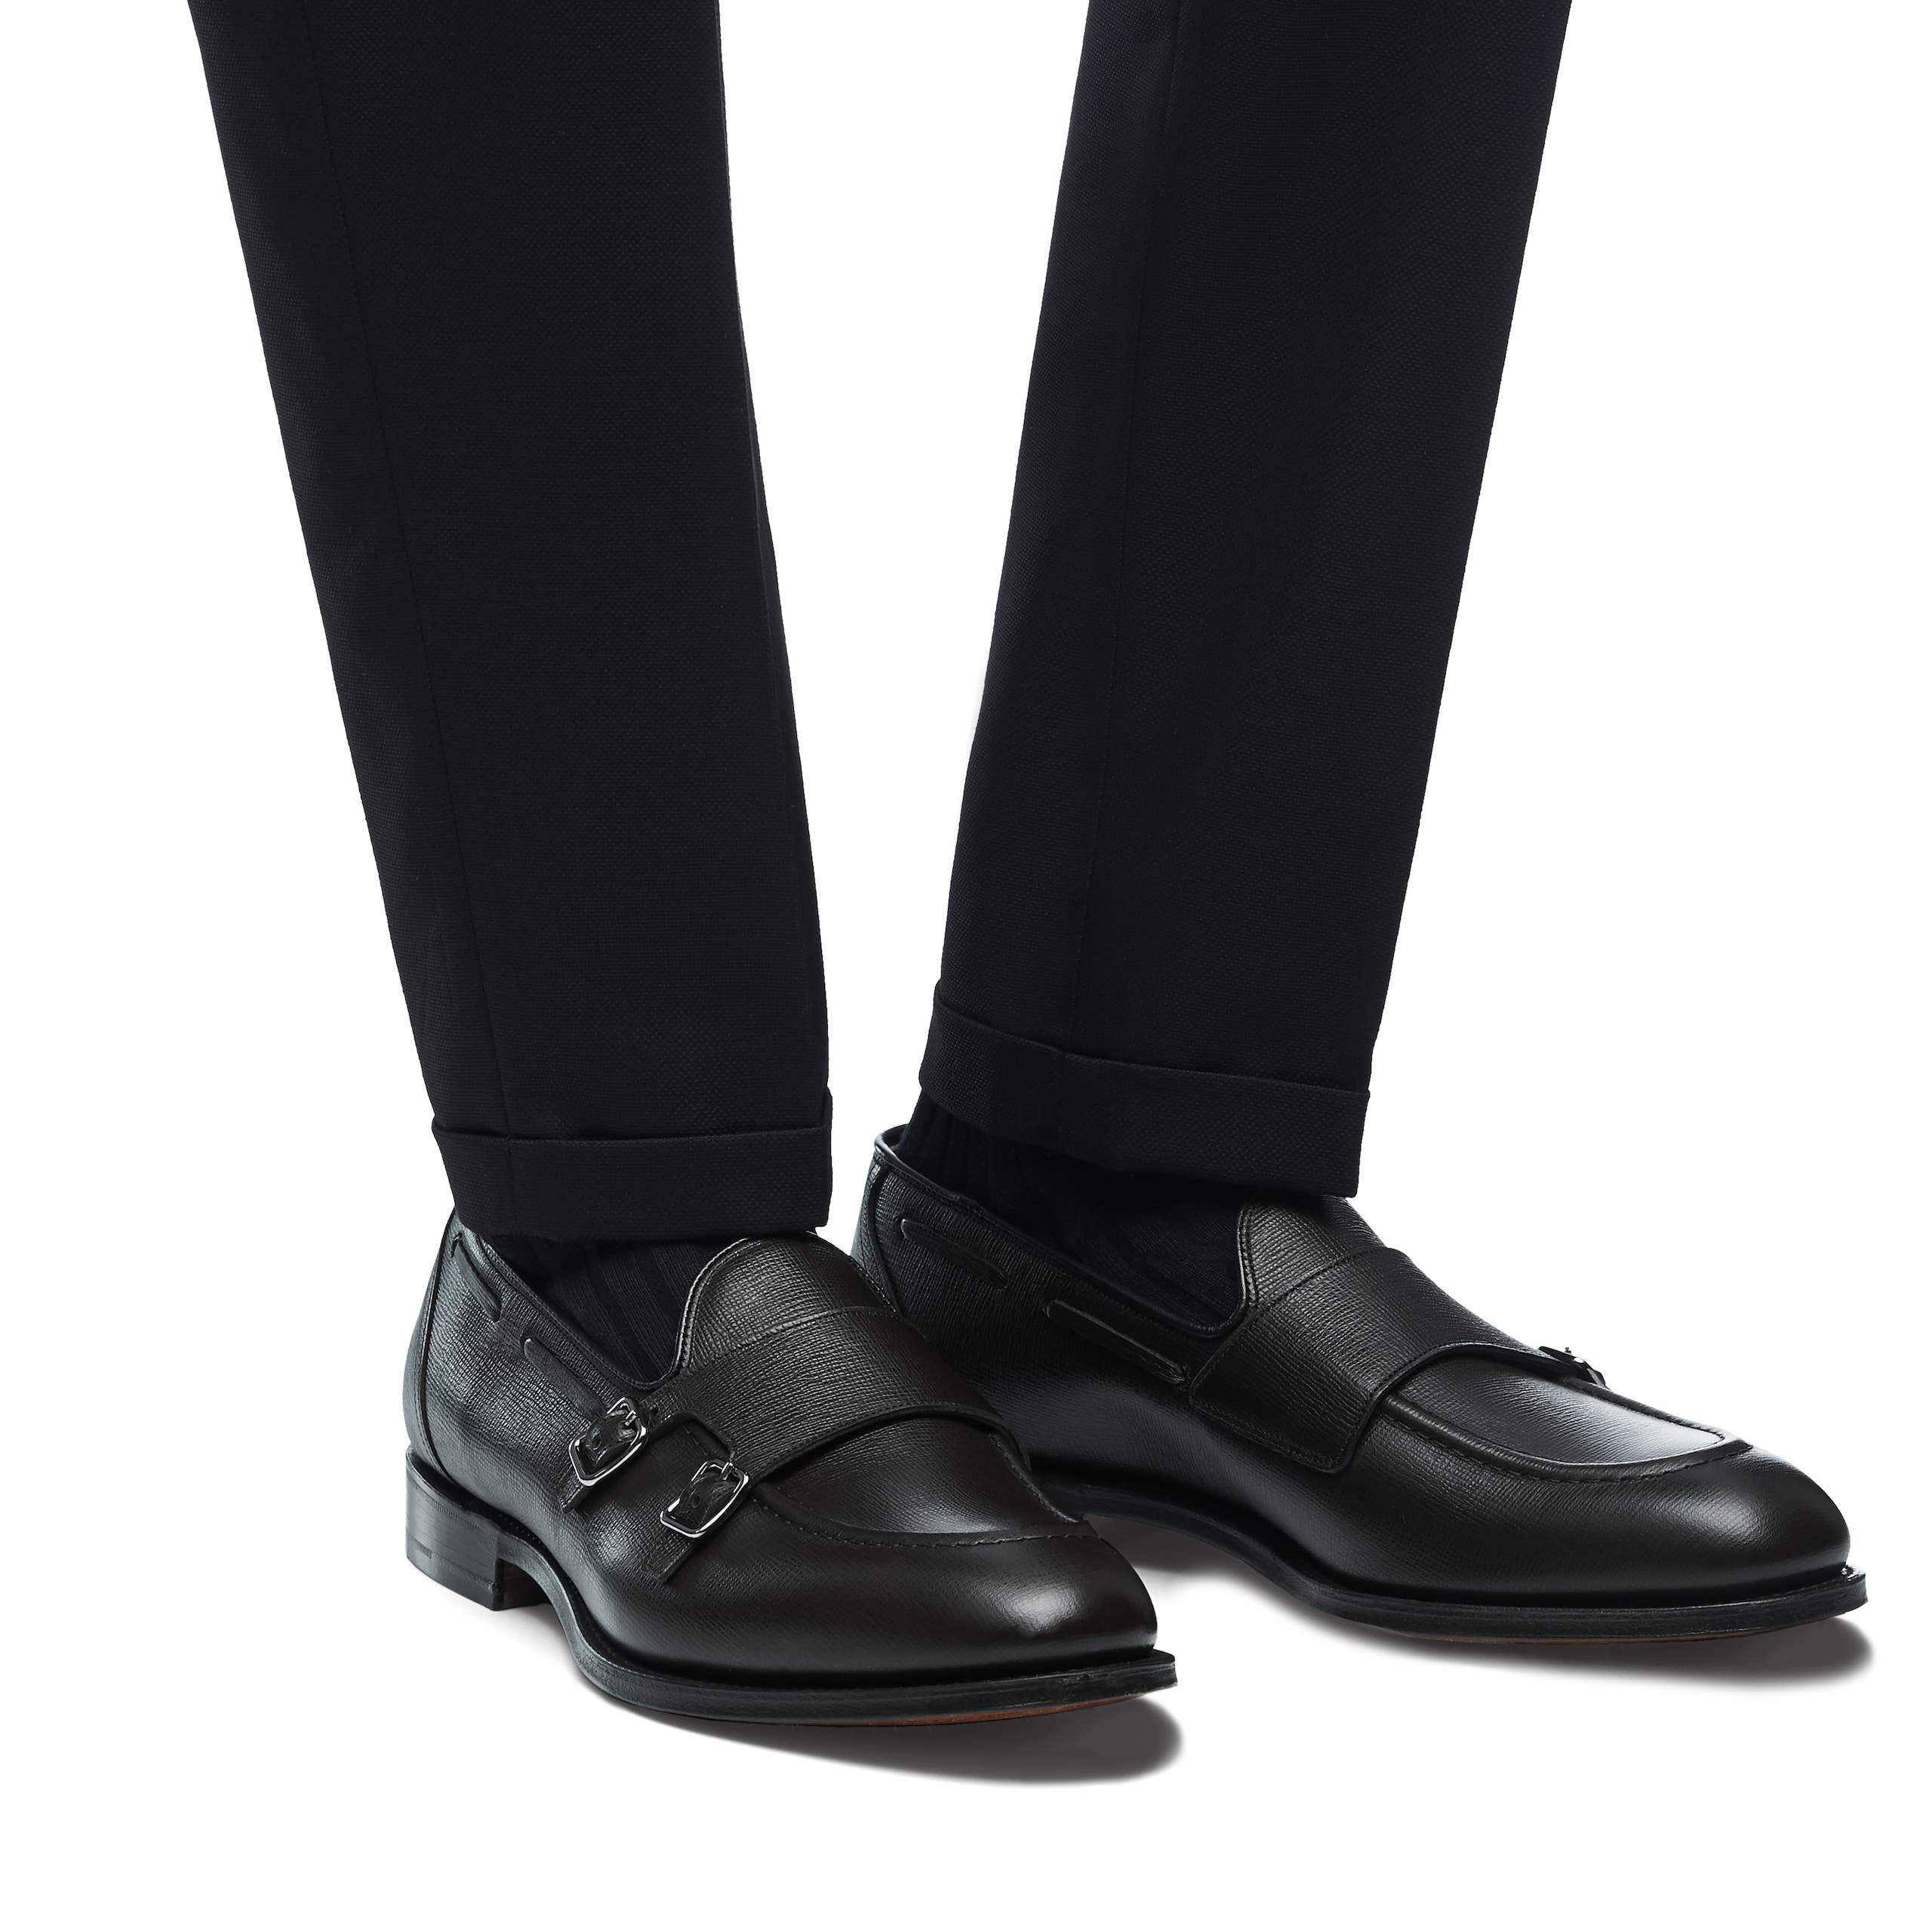 Clatford Church's St James Leather Monk Strap Black